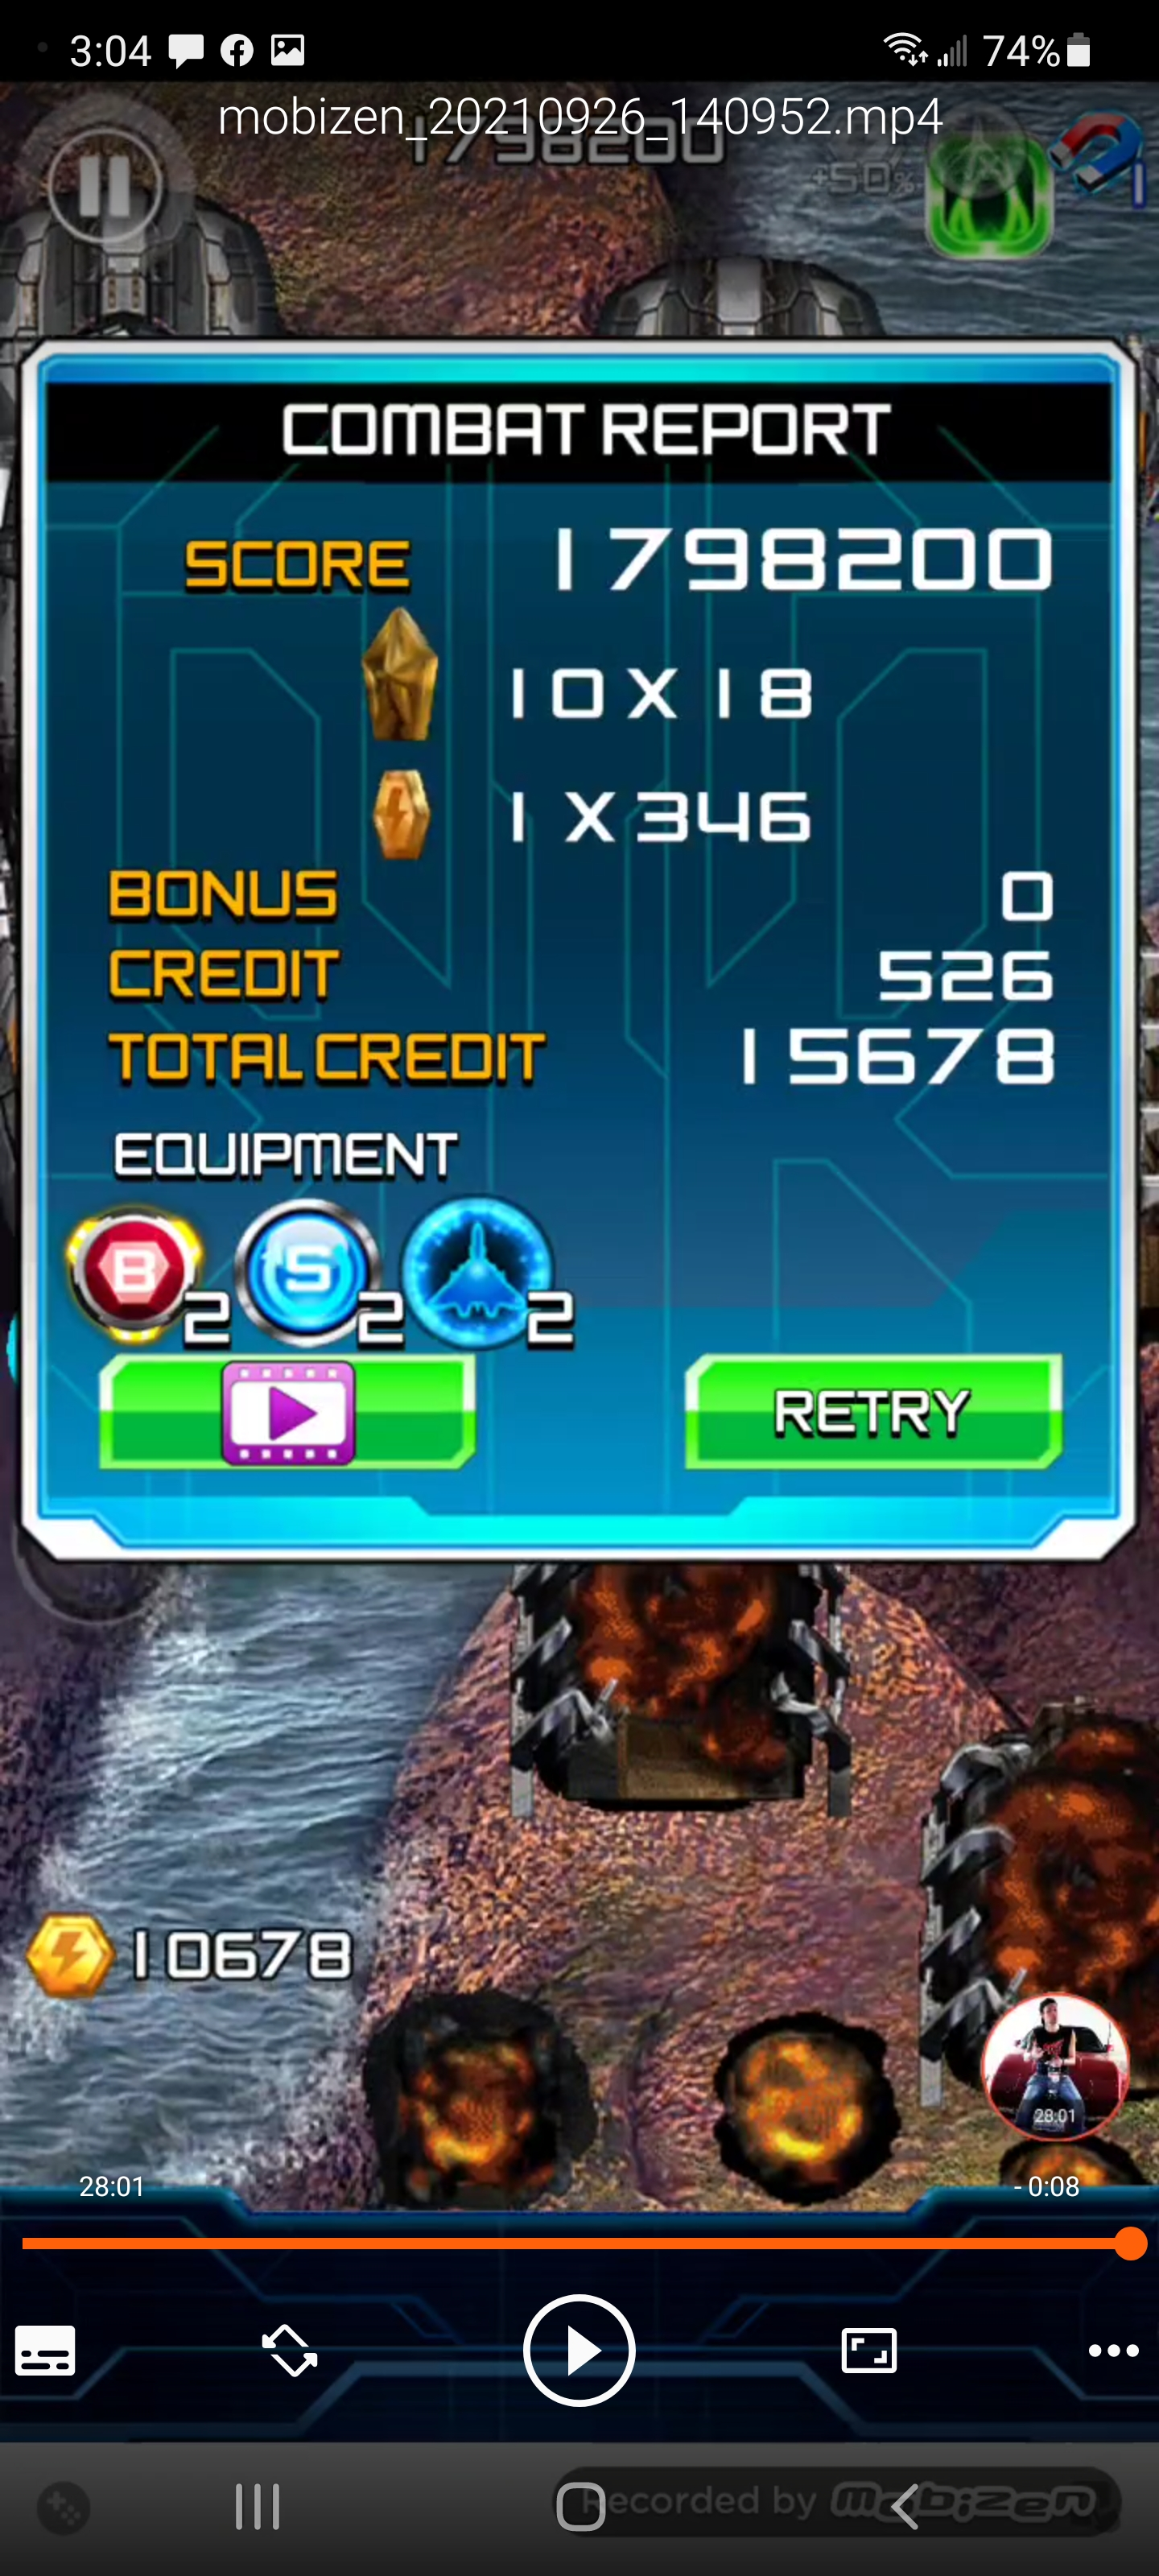 JES: Lightning Fighter 2 (Android) 10,213,400 points on 2021-09-26 16:06:29